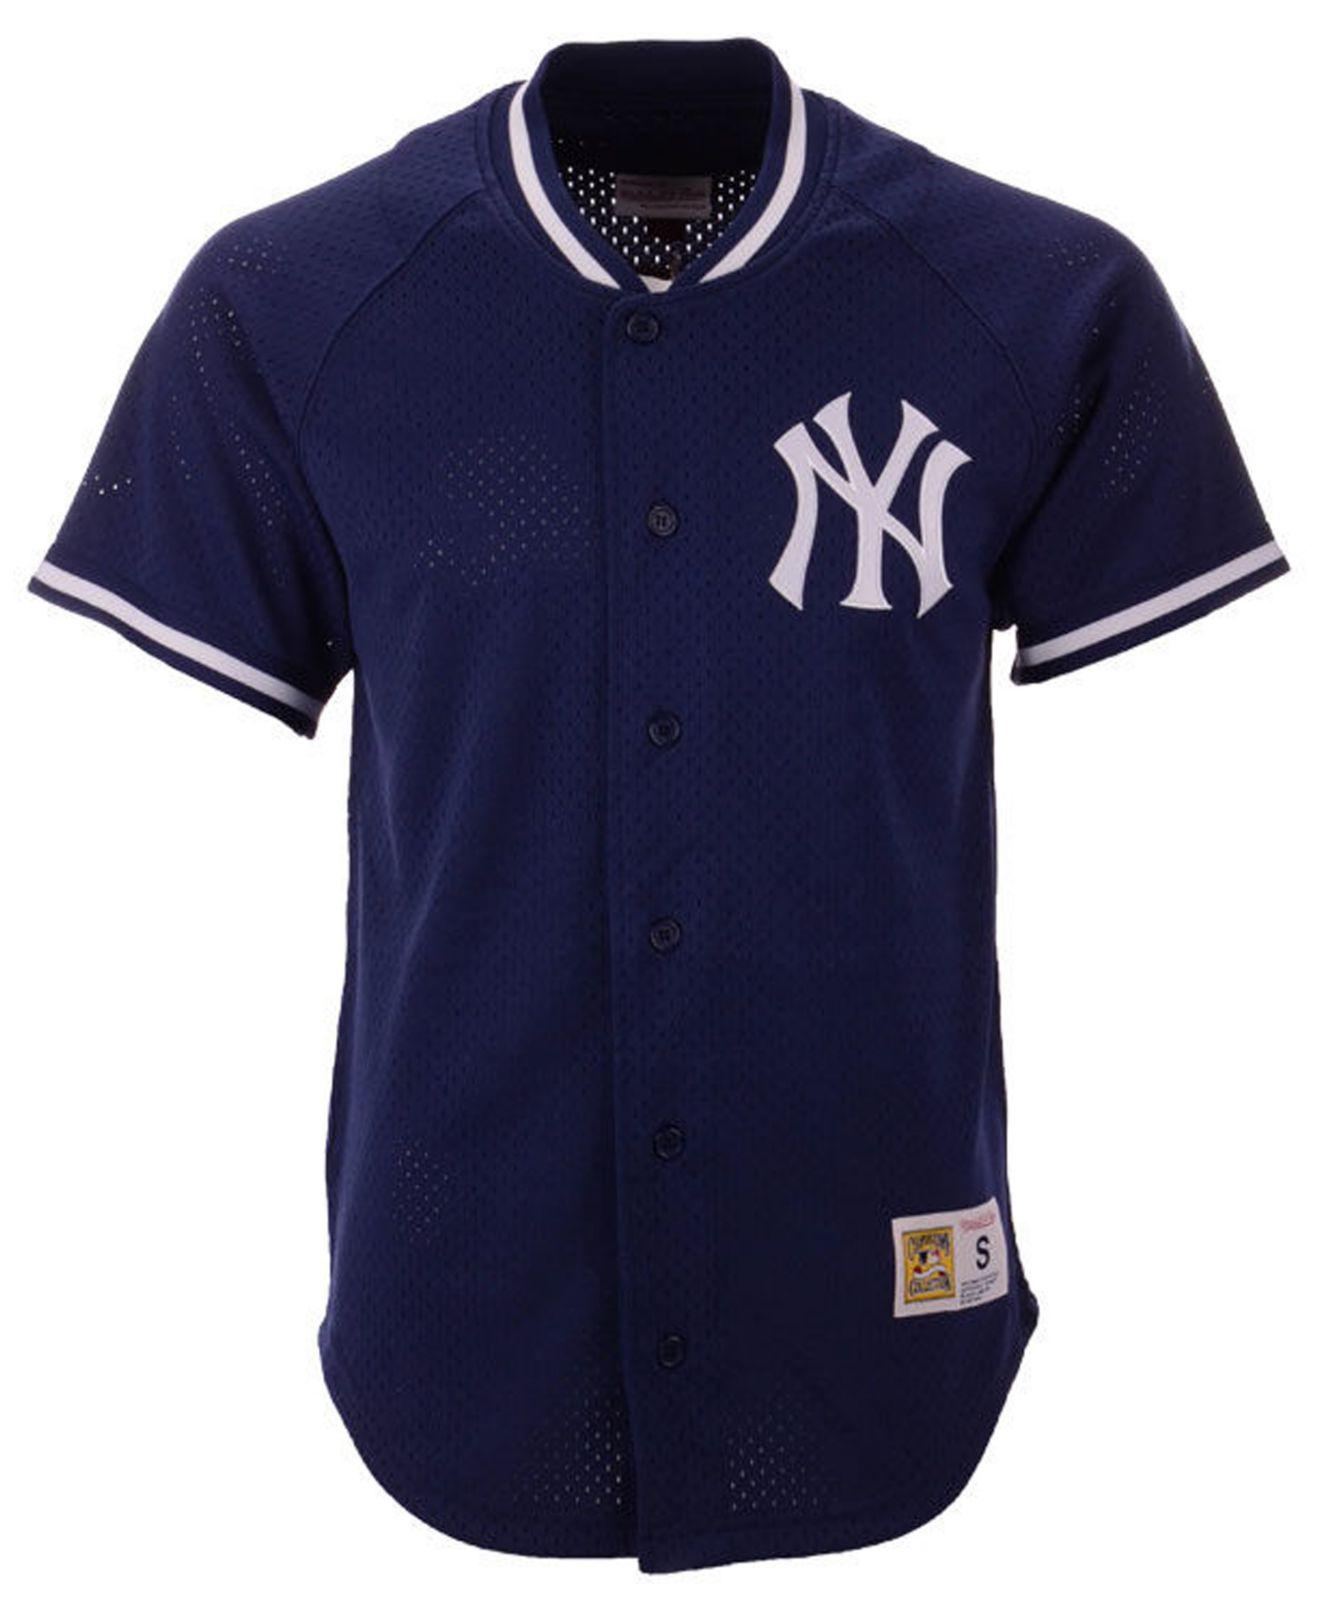 ebfff3bea1a57 Lyst - Mitchell   Ness New York Yankees Pro Mesh Jersey in Blue for Men